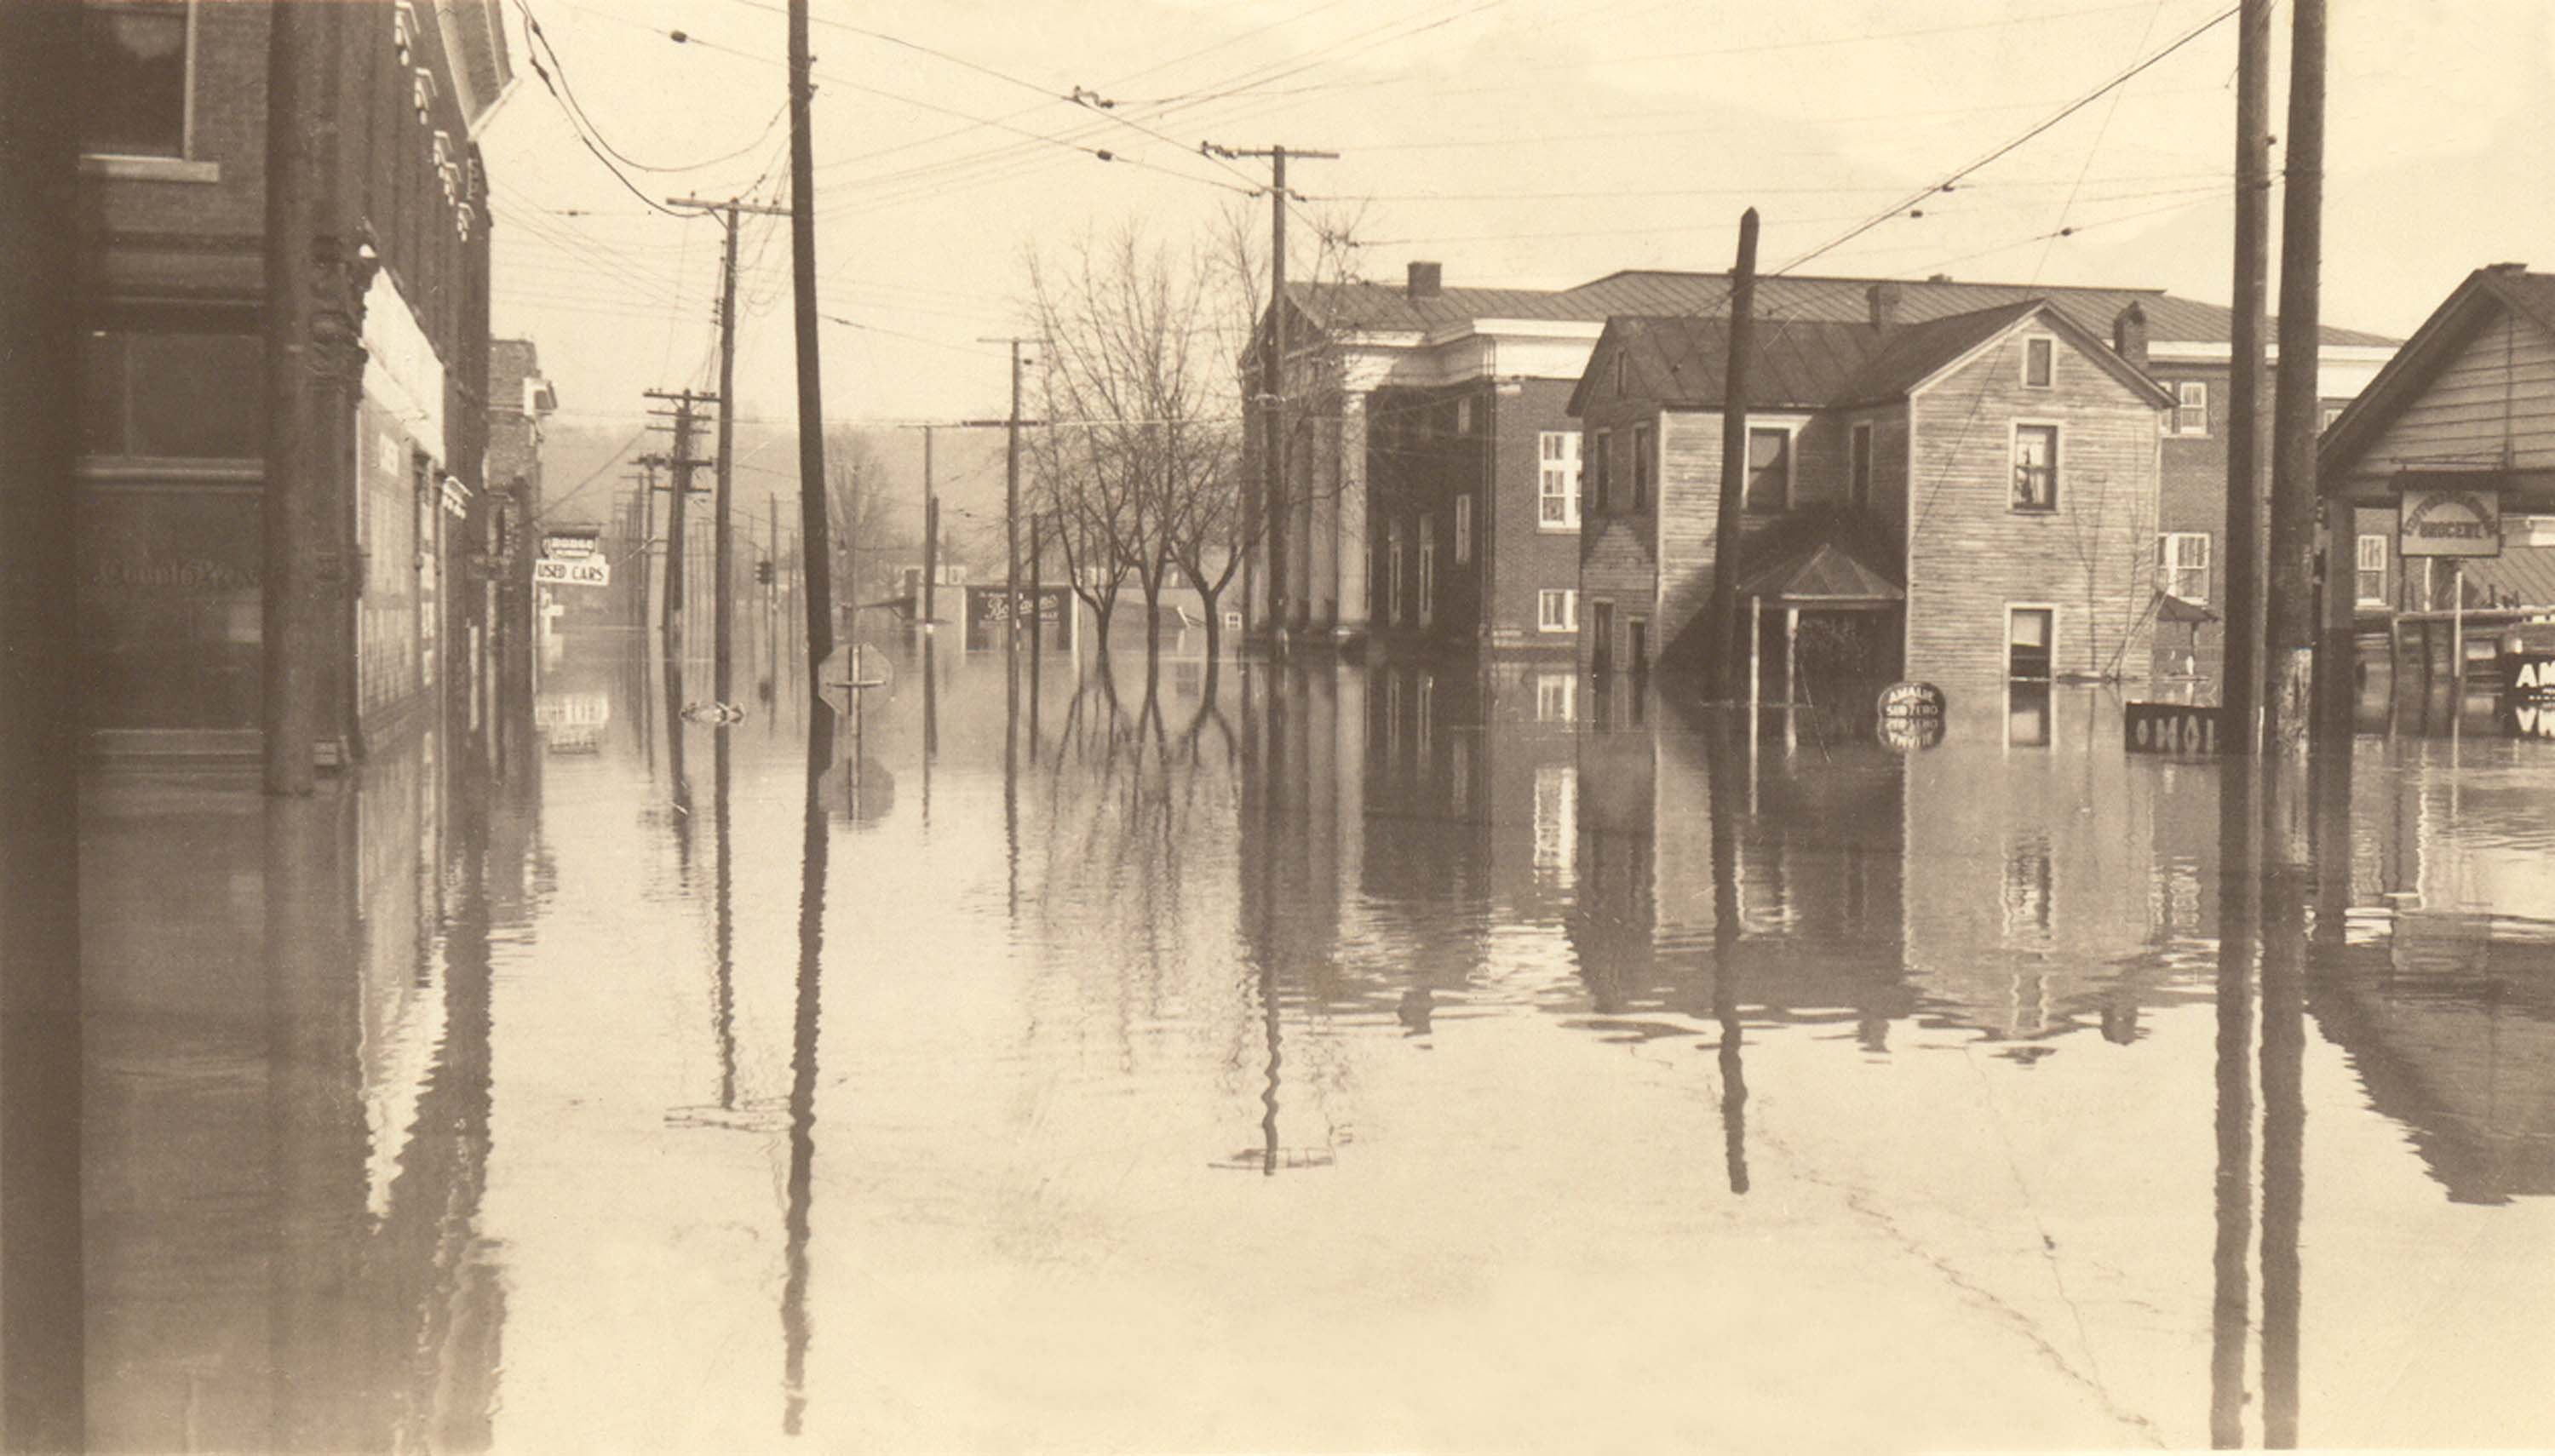 The church in the Flood of 1937. Courtesy of the Kenova Historical Commission.